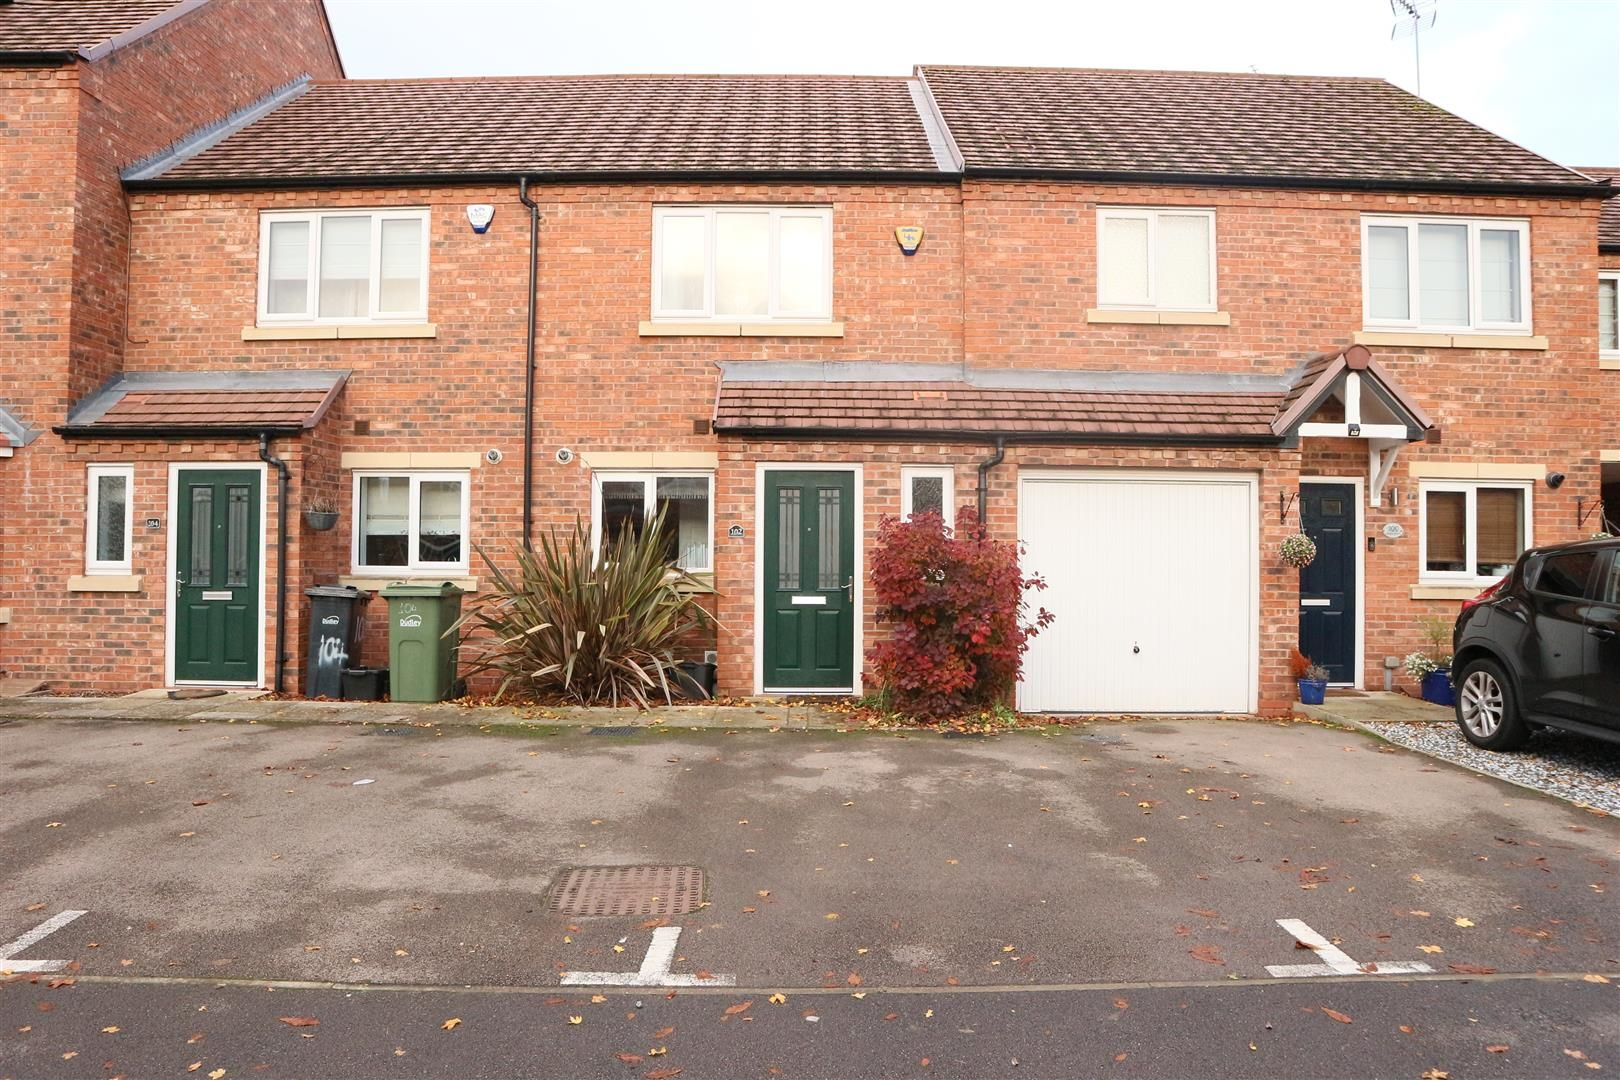 2 bed terraced for sale, DY8